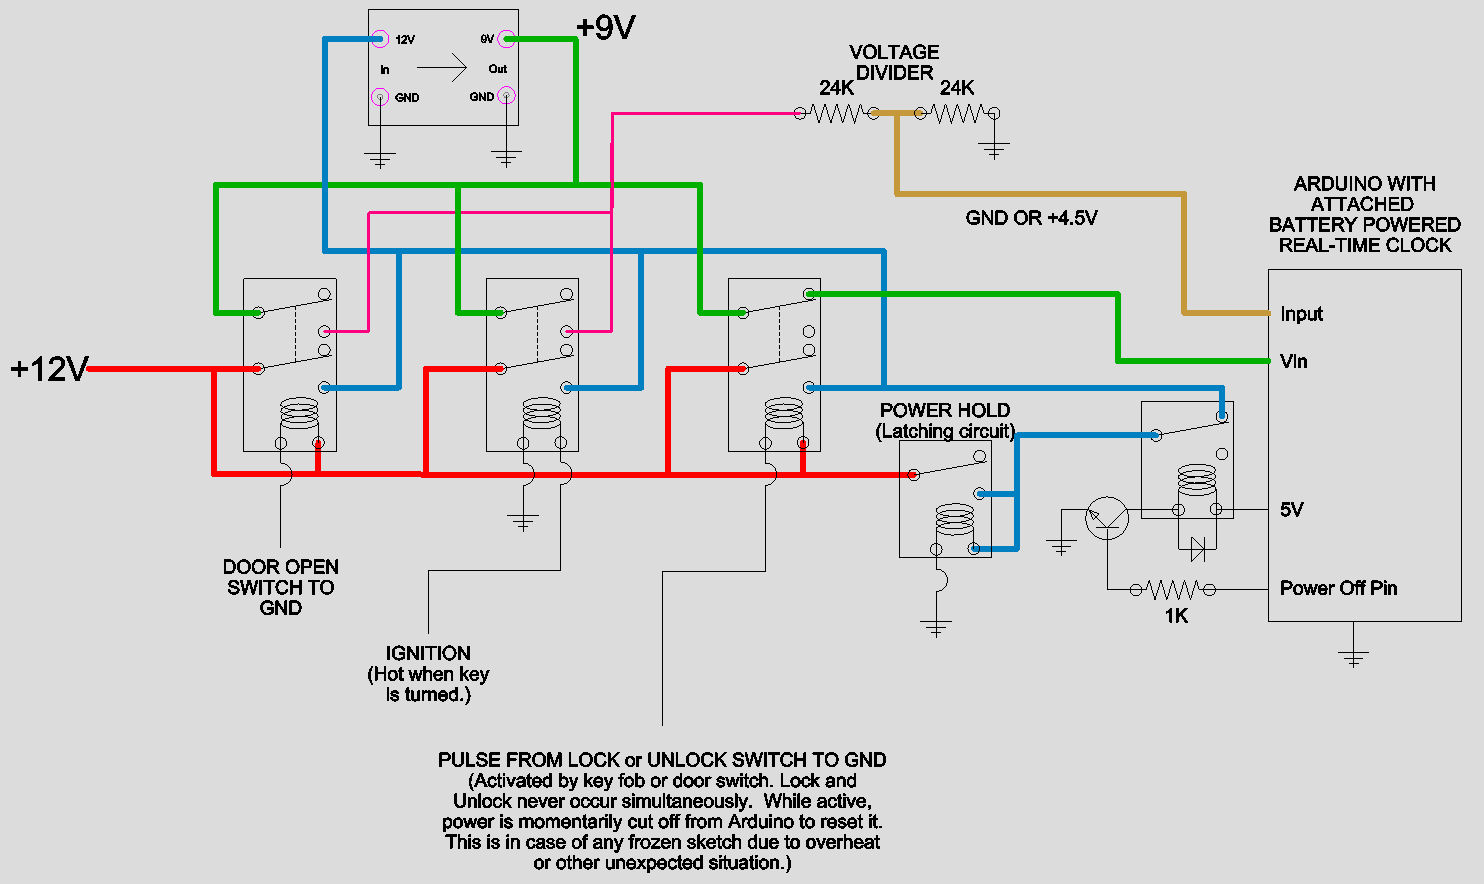 hight resolution of i know the car voltage is noisy and unstable but to my knowledge a relay coil isn t sensitive like a mircocontroller and the arduino itself is getting